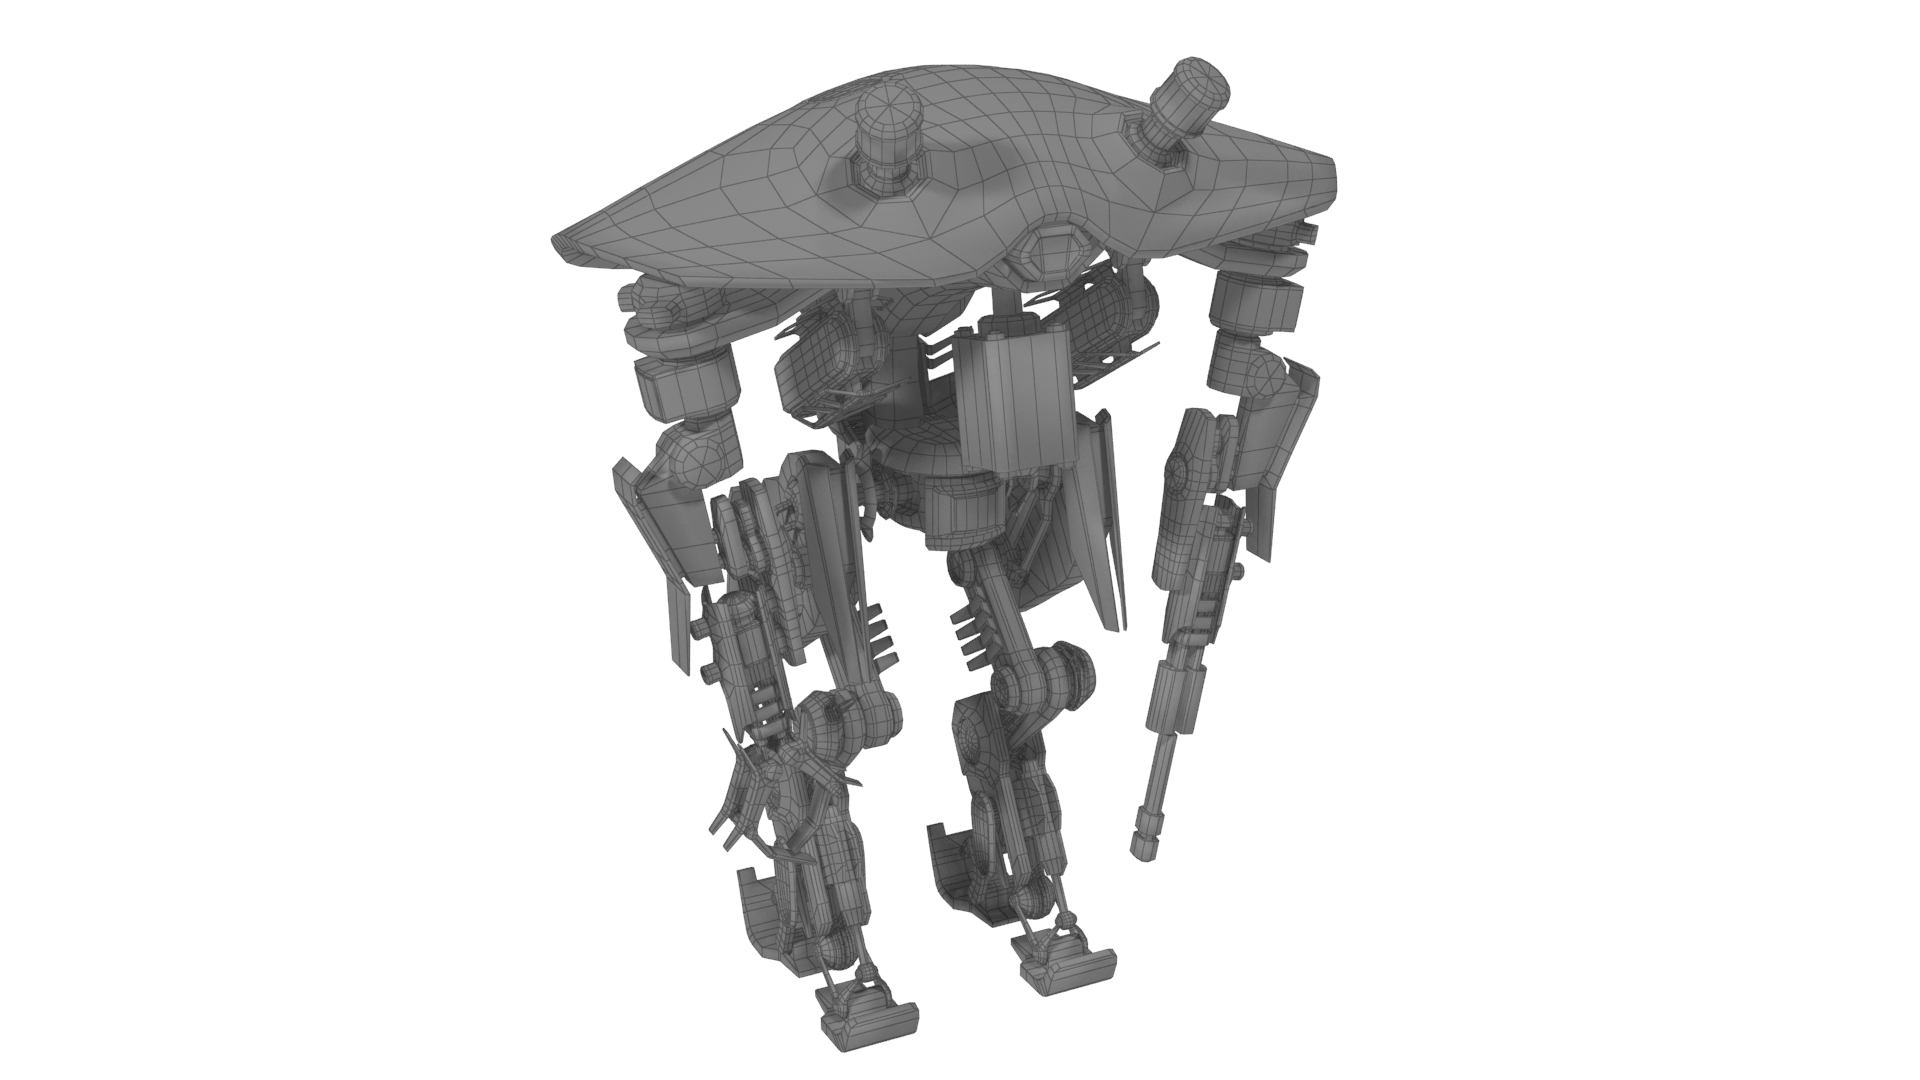 heavy robot vex700 3d model 3ds max fbx obj 279584